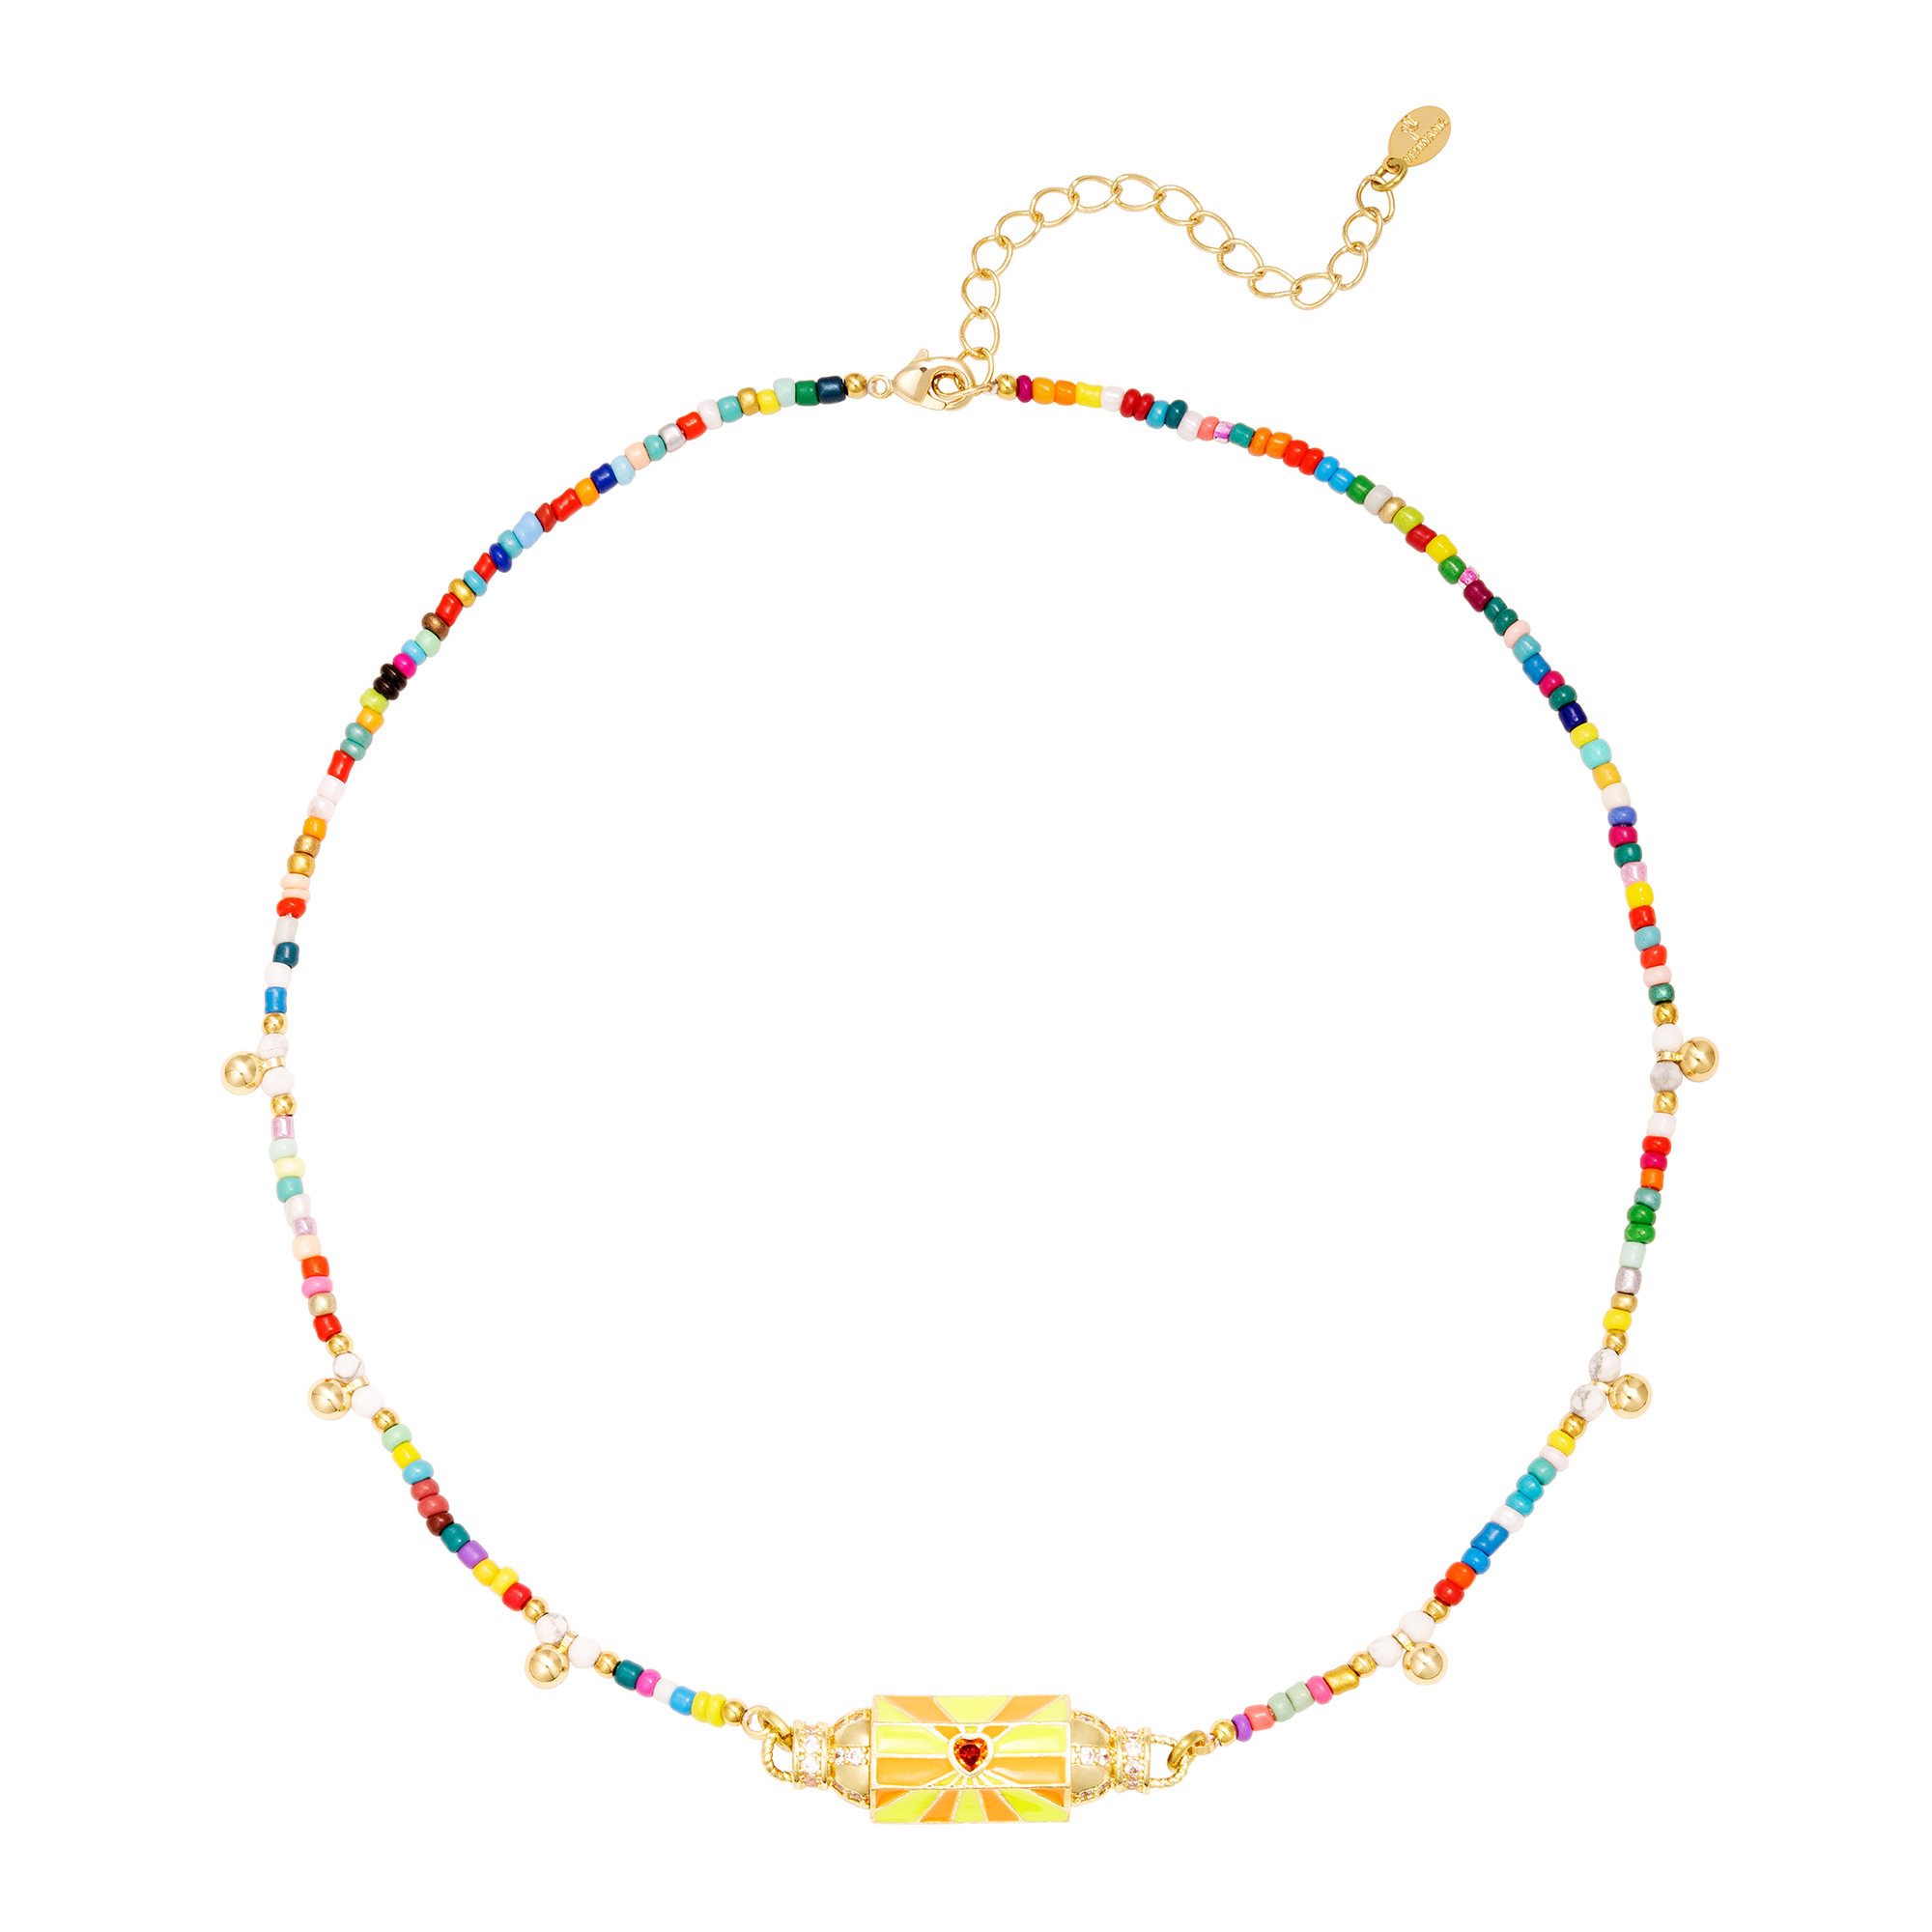 Beaded colorful necklace with bead